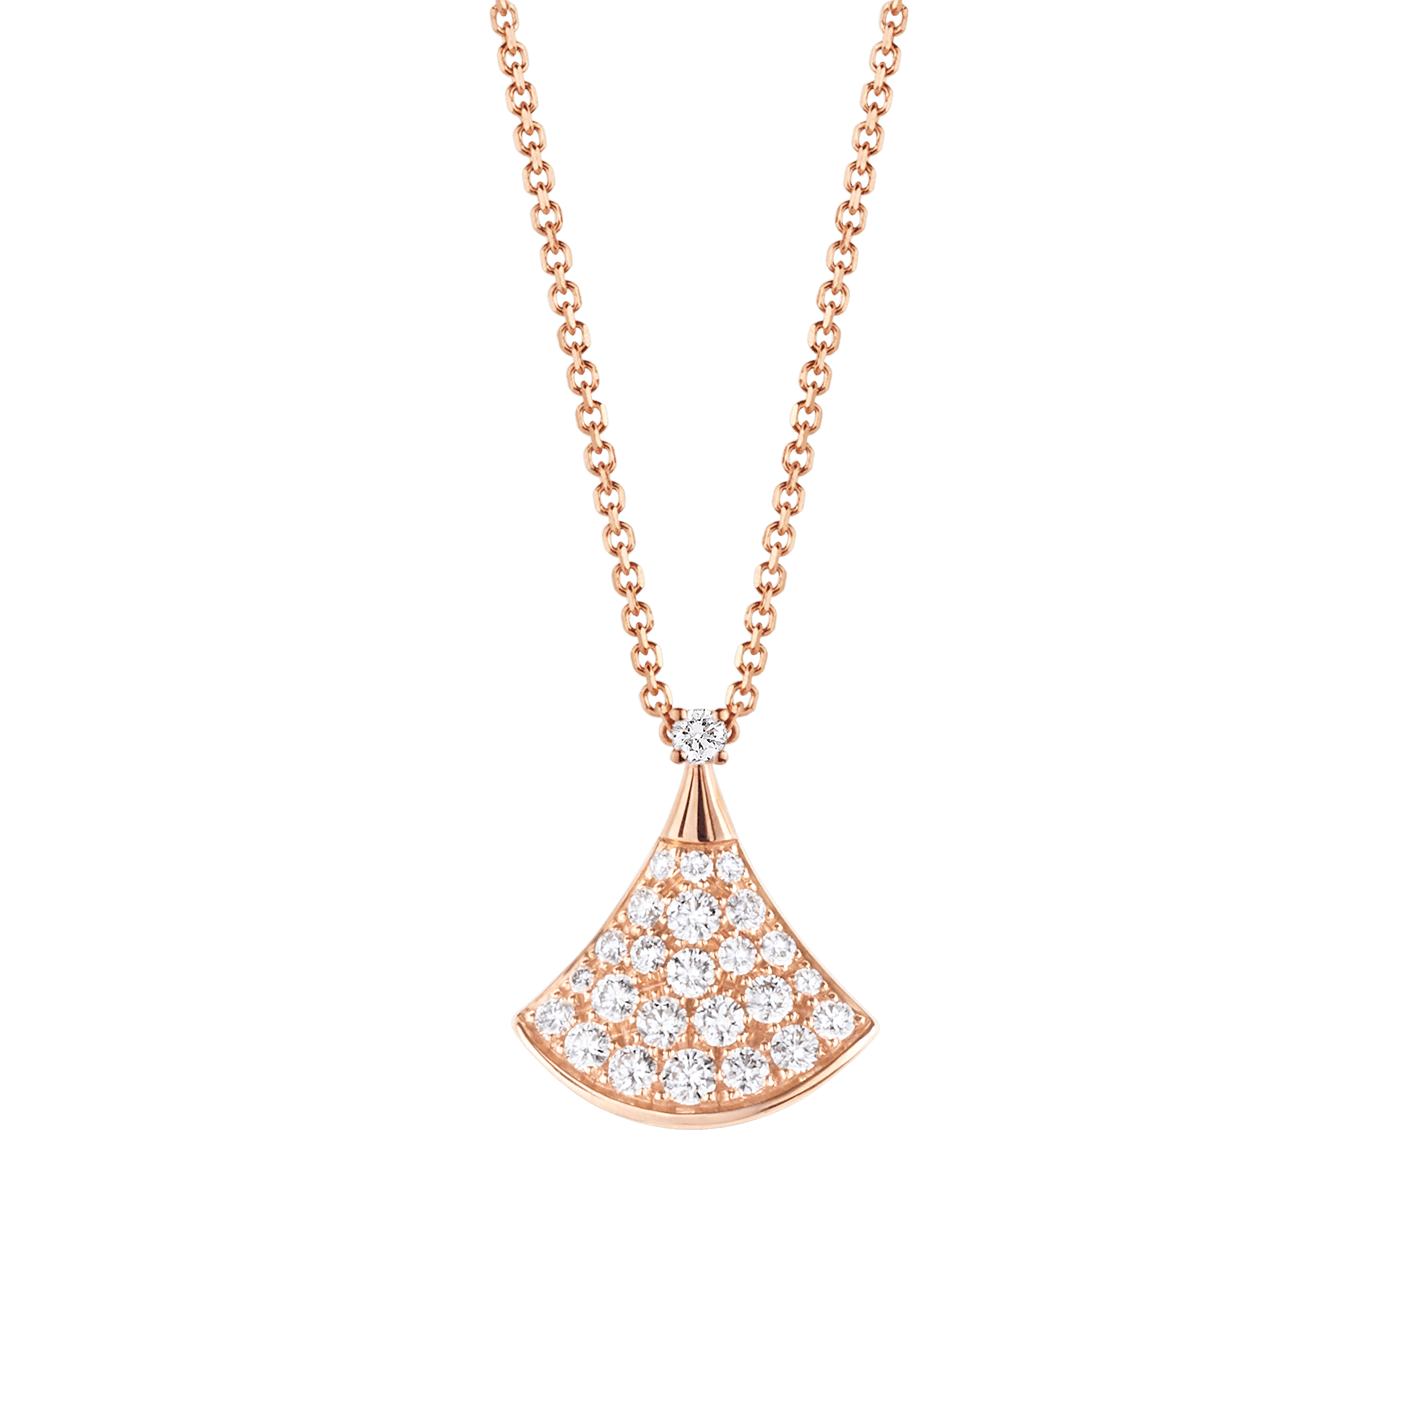 imitation bulgari necklace gold diamonds